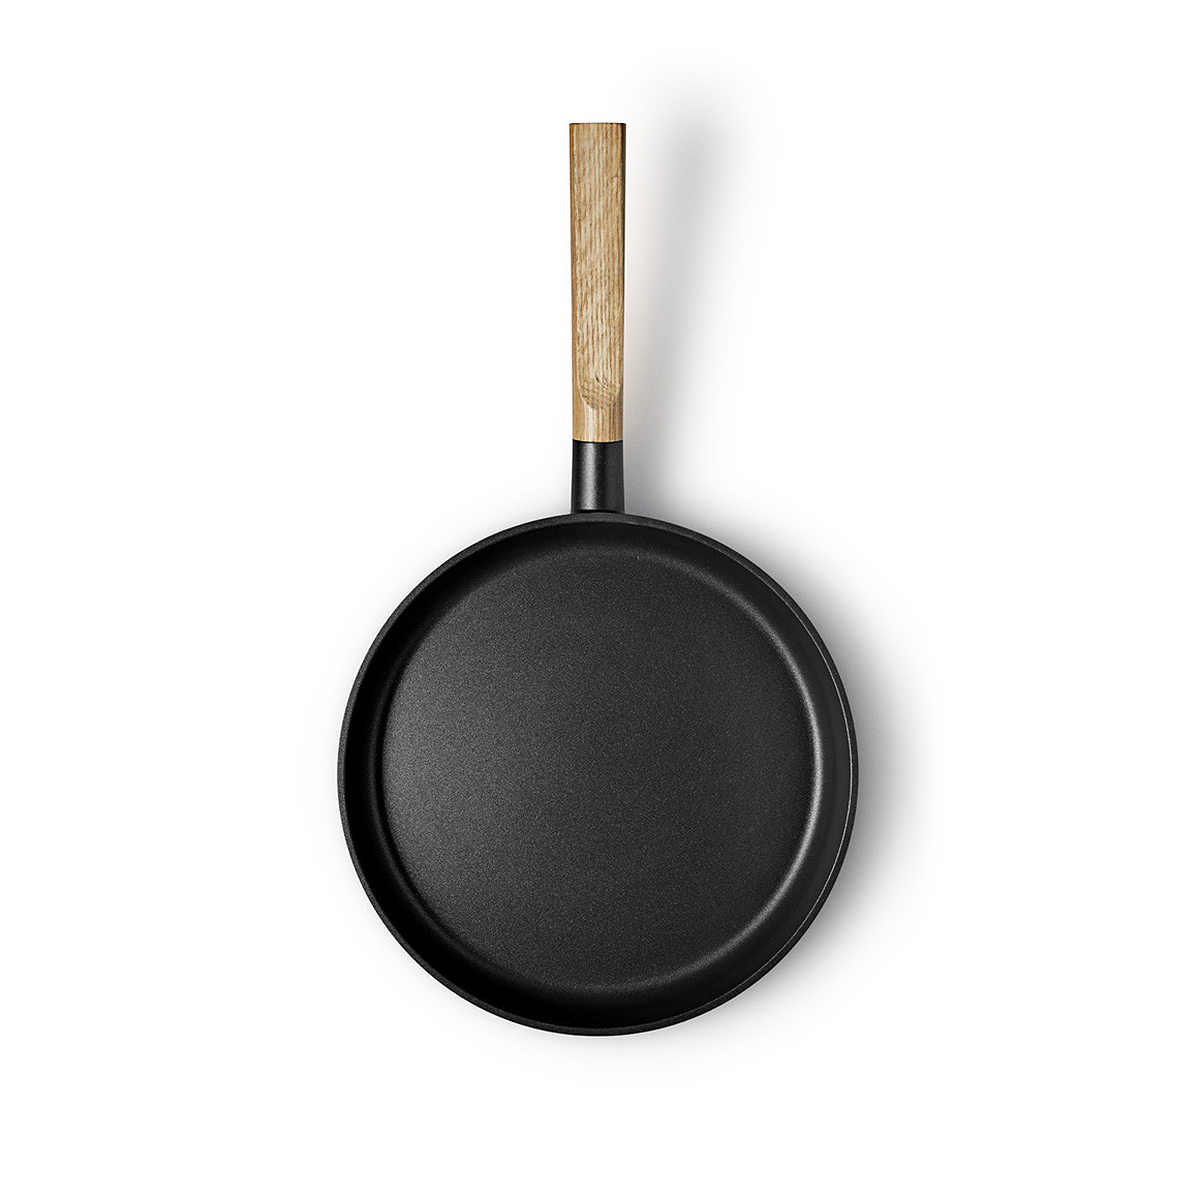 Eva Solo Nordic Kitchen Frying Pan 28cm 自然歐風系列 木柄 平底煎鍋